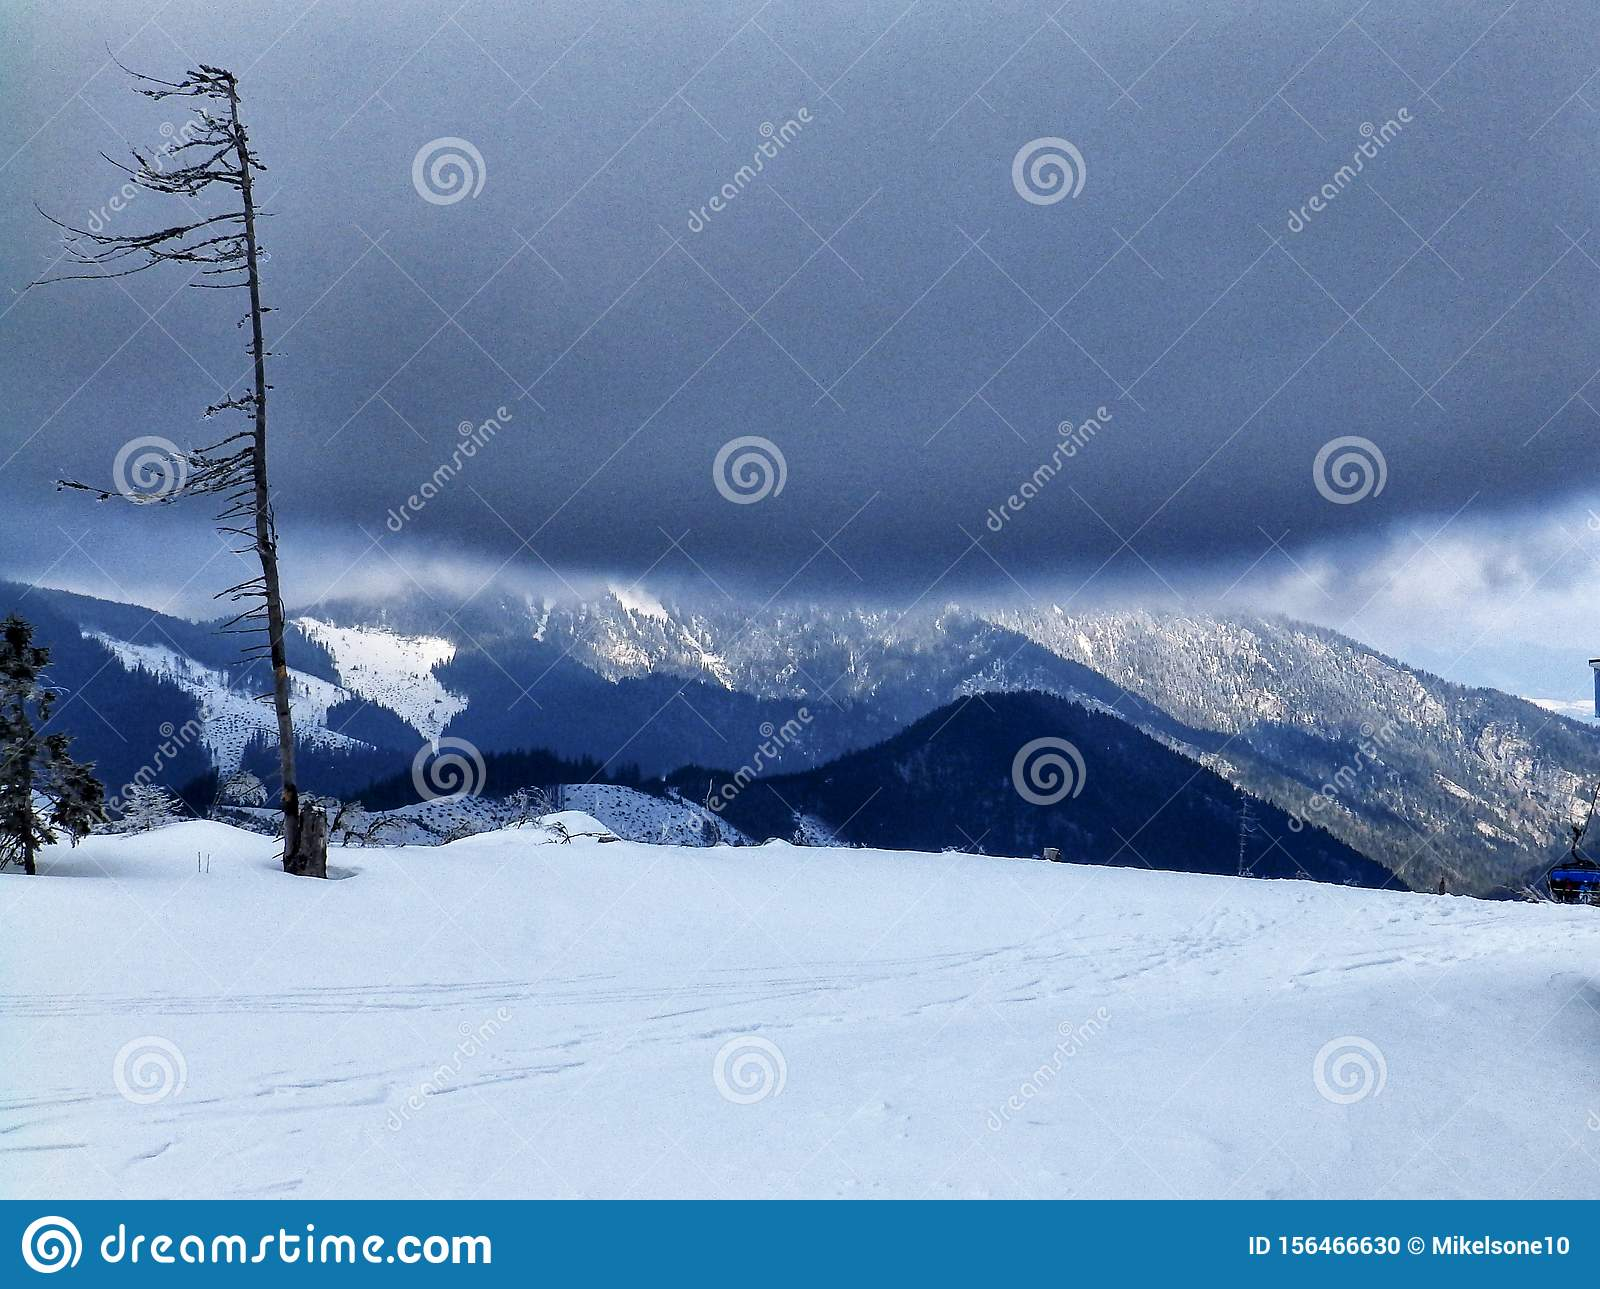 Tatra mountain peaks evening light, winter evening, slovakia mountains and rocks covered with snow, overcast winter day